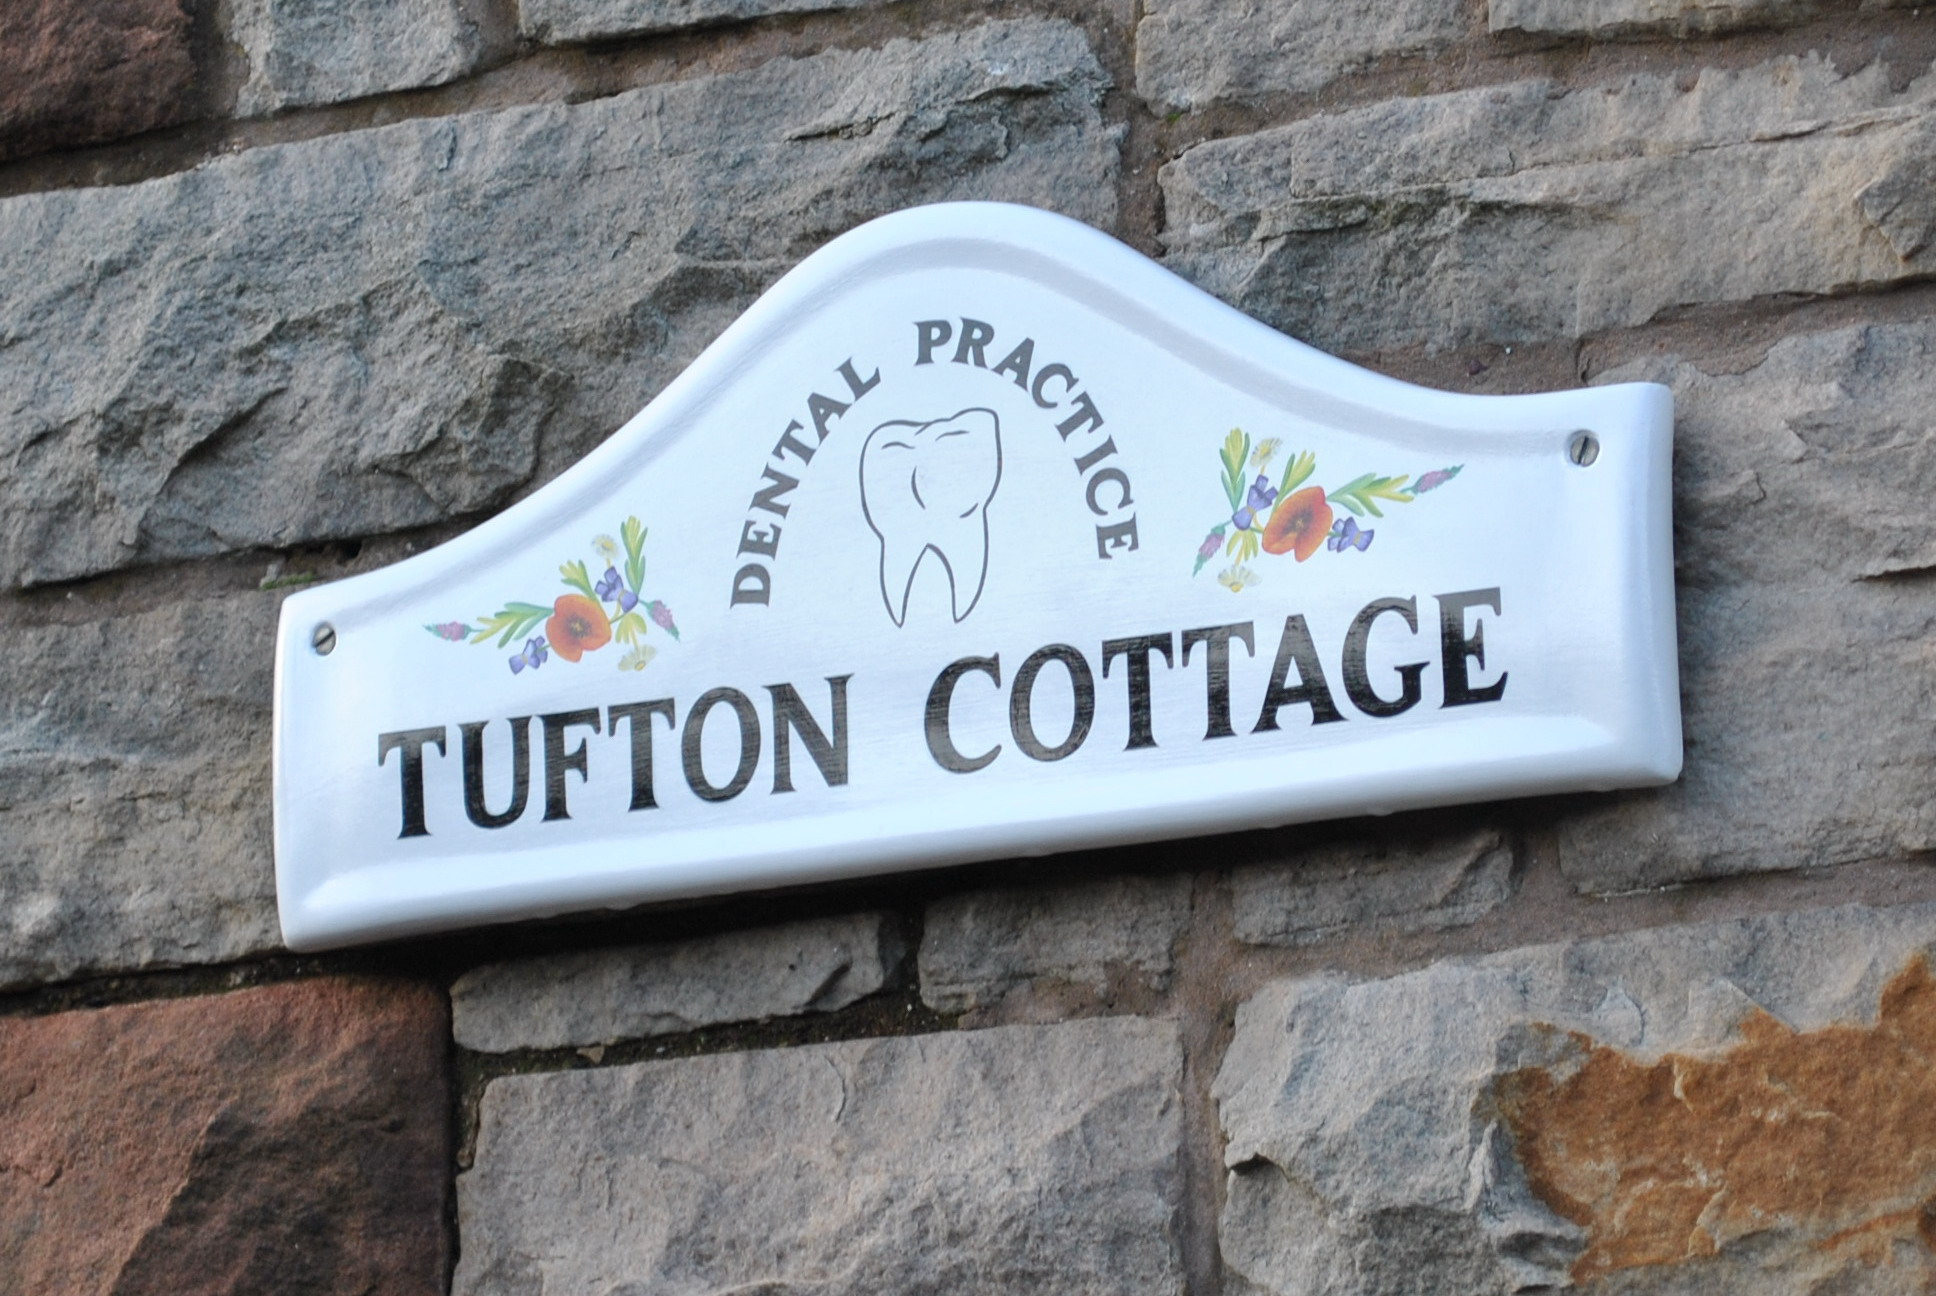 Tufton Cottage Dental Practice